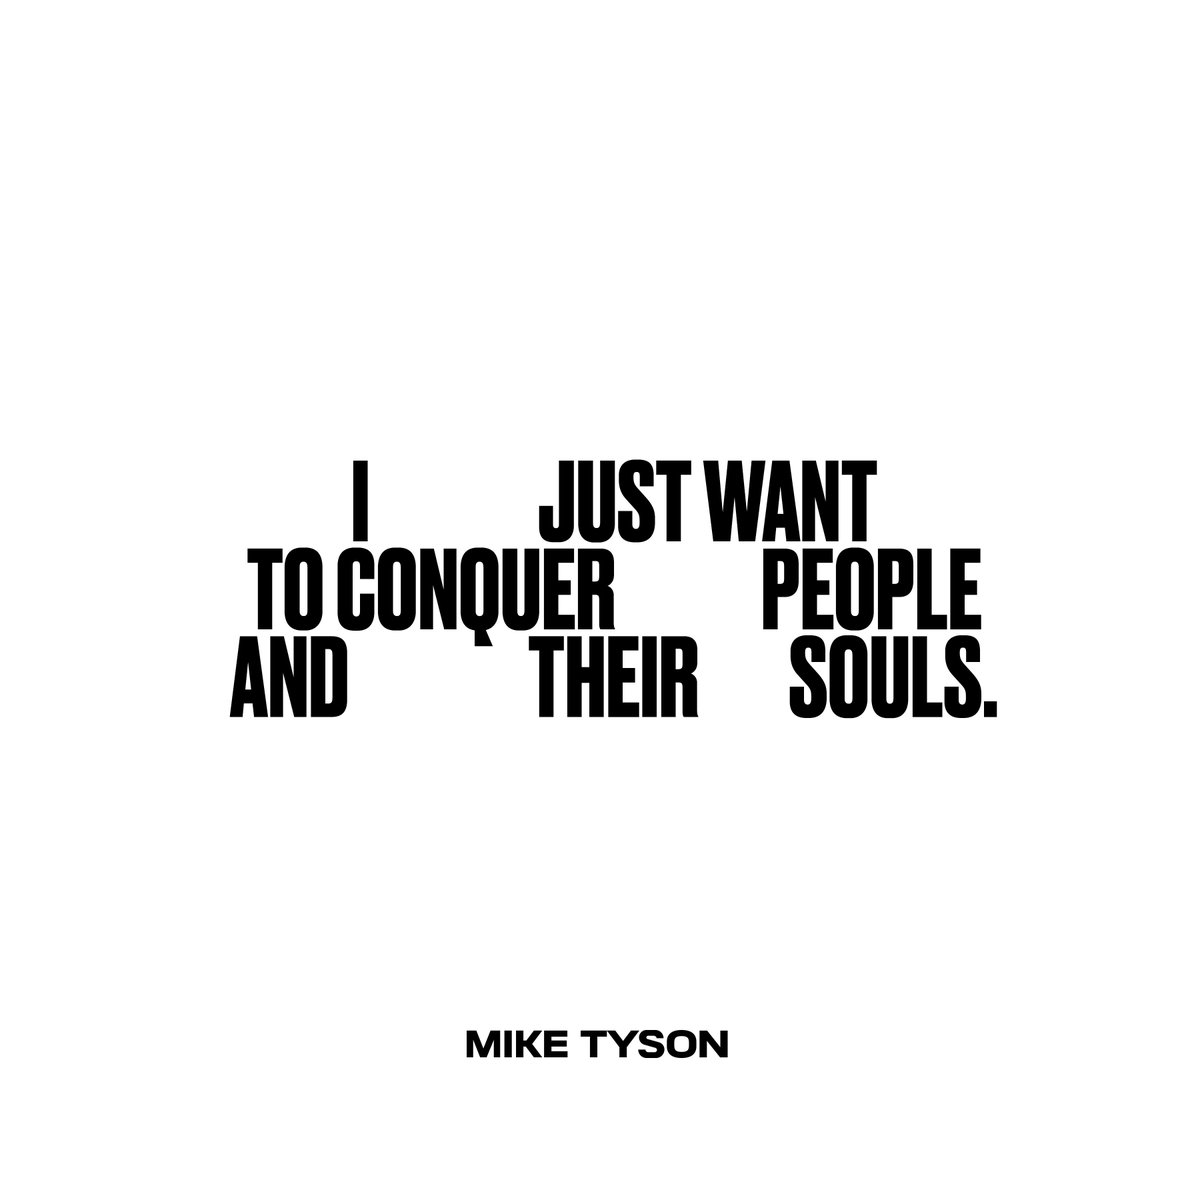 I just want to conquer people and their souls. #miketyson #vintagetyson https://t.co/x5es4ezLEw